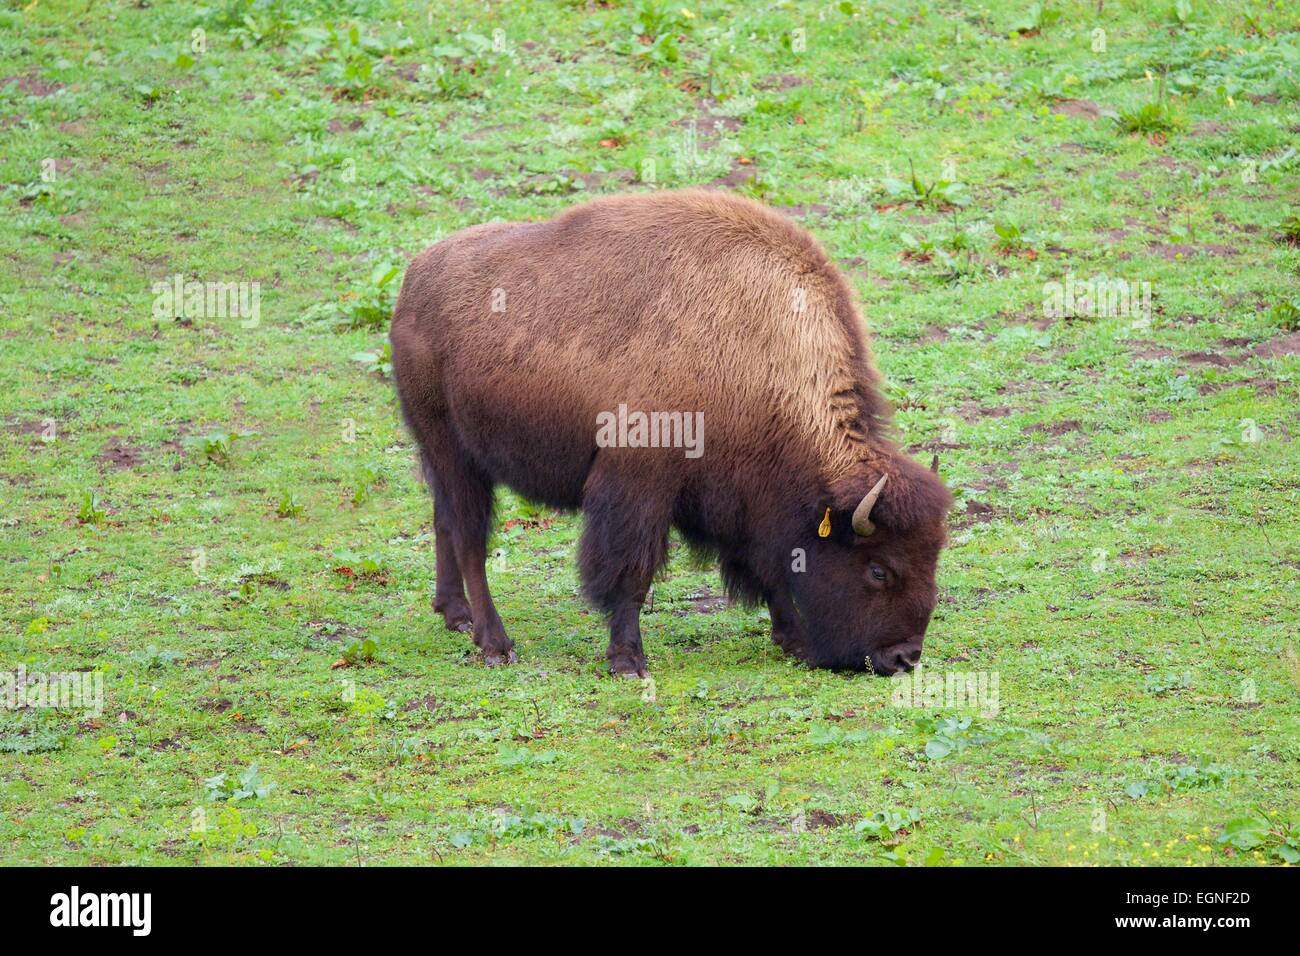 Bison in Golden Gate Park, San Francisco, California Stock Photo